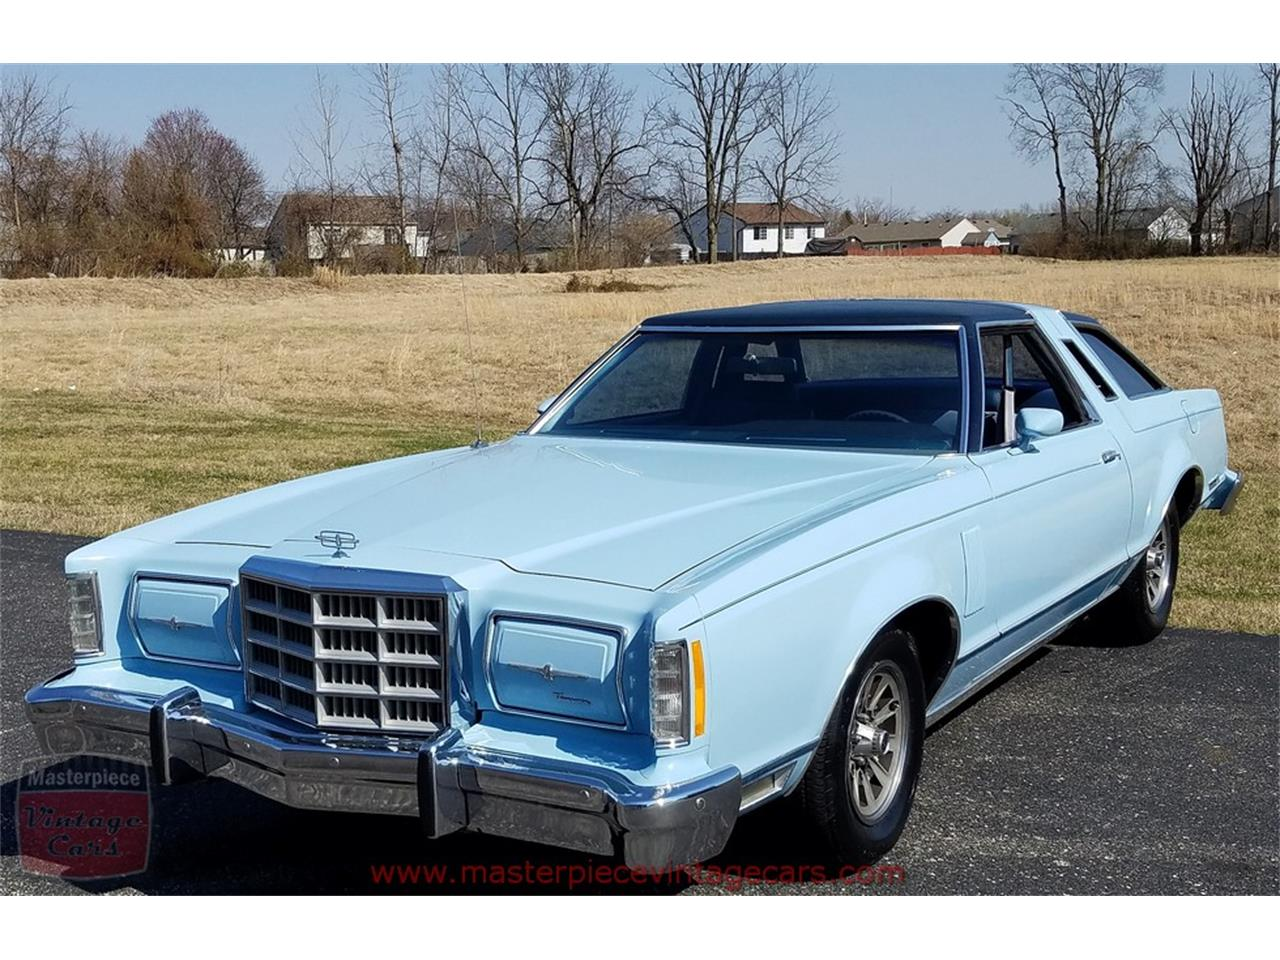 Large Picture of '79 Ford Thunderbird located in Indiana - $6,950.00 Offered by Masterpiece Vintage Cars - KV4O